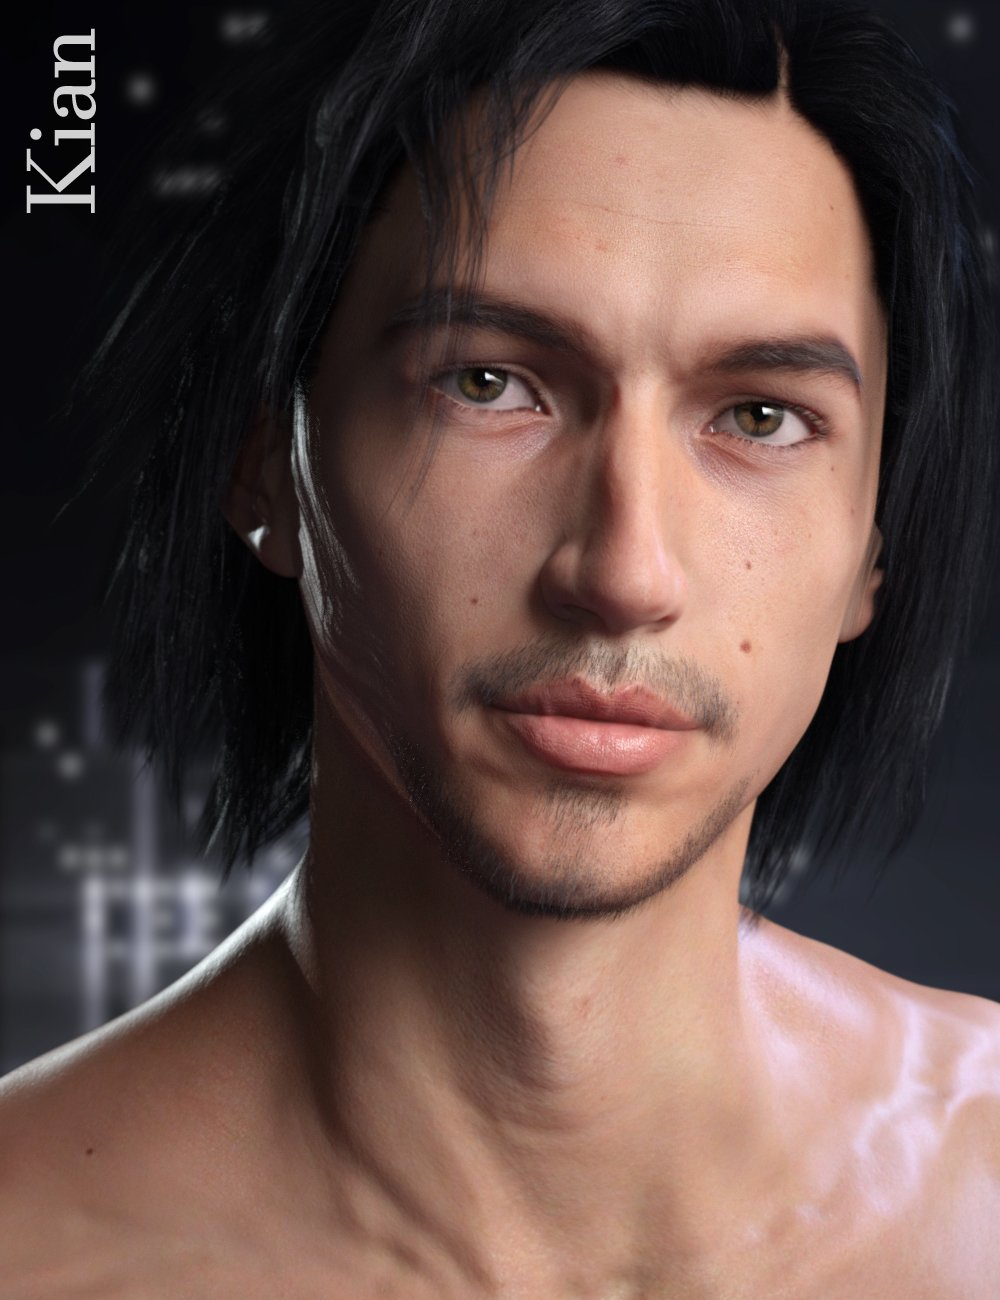 RY Kian for Michael 8 by: Raiyaoutoftouch, 3D Models by Daz 3D